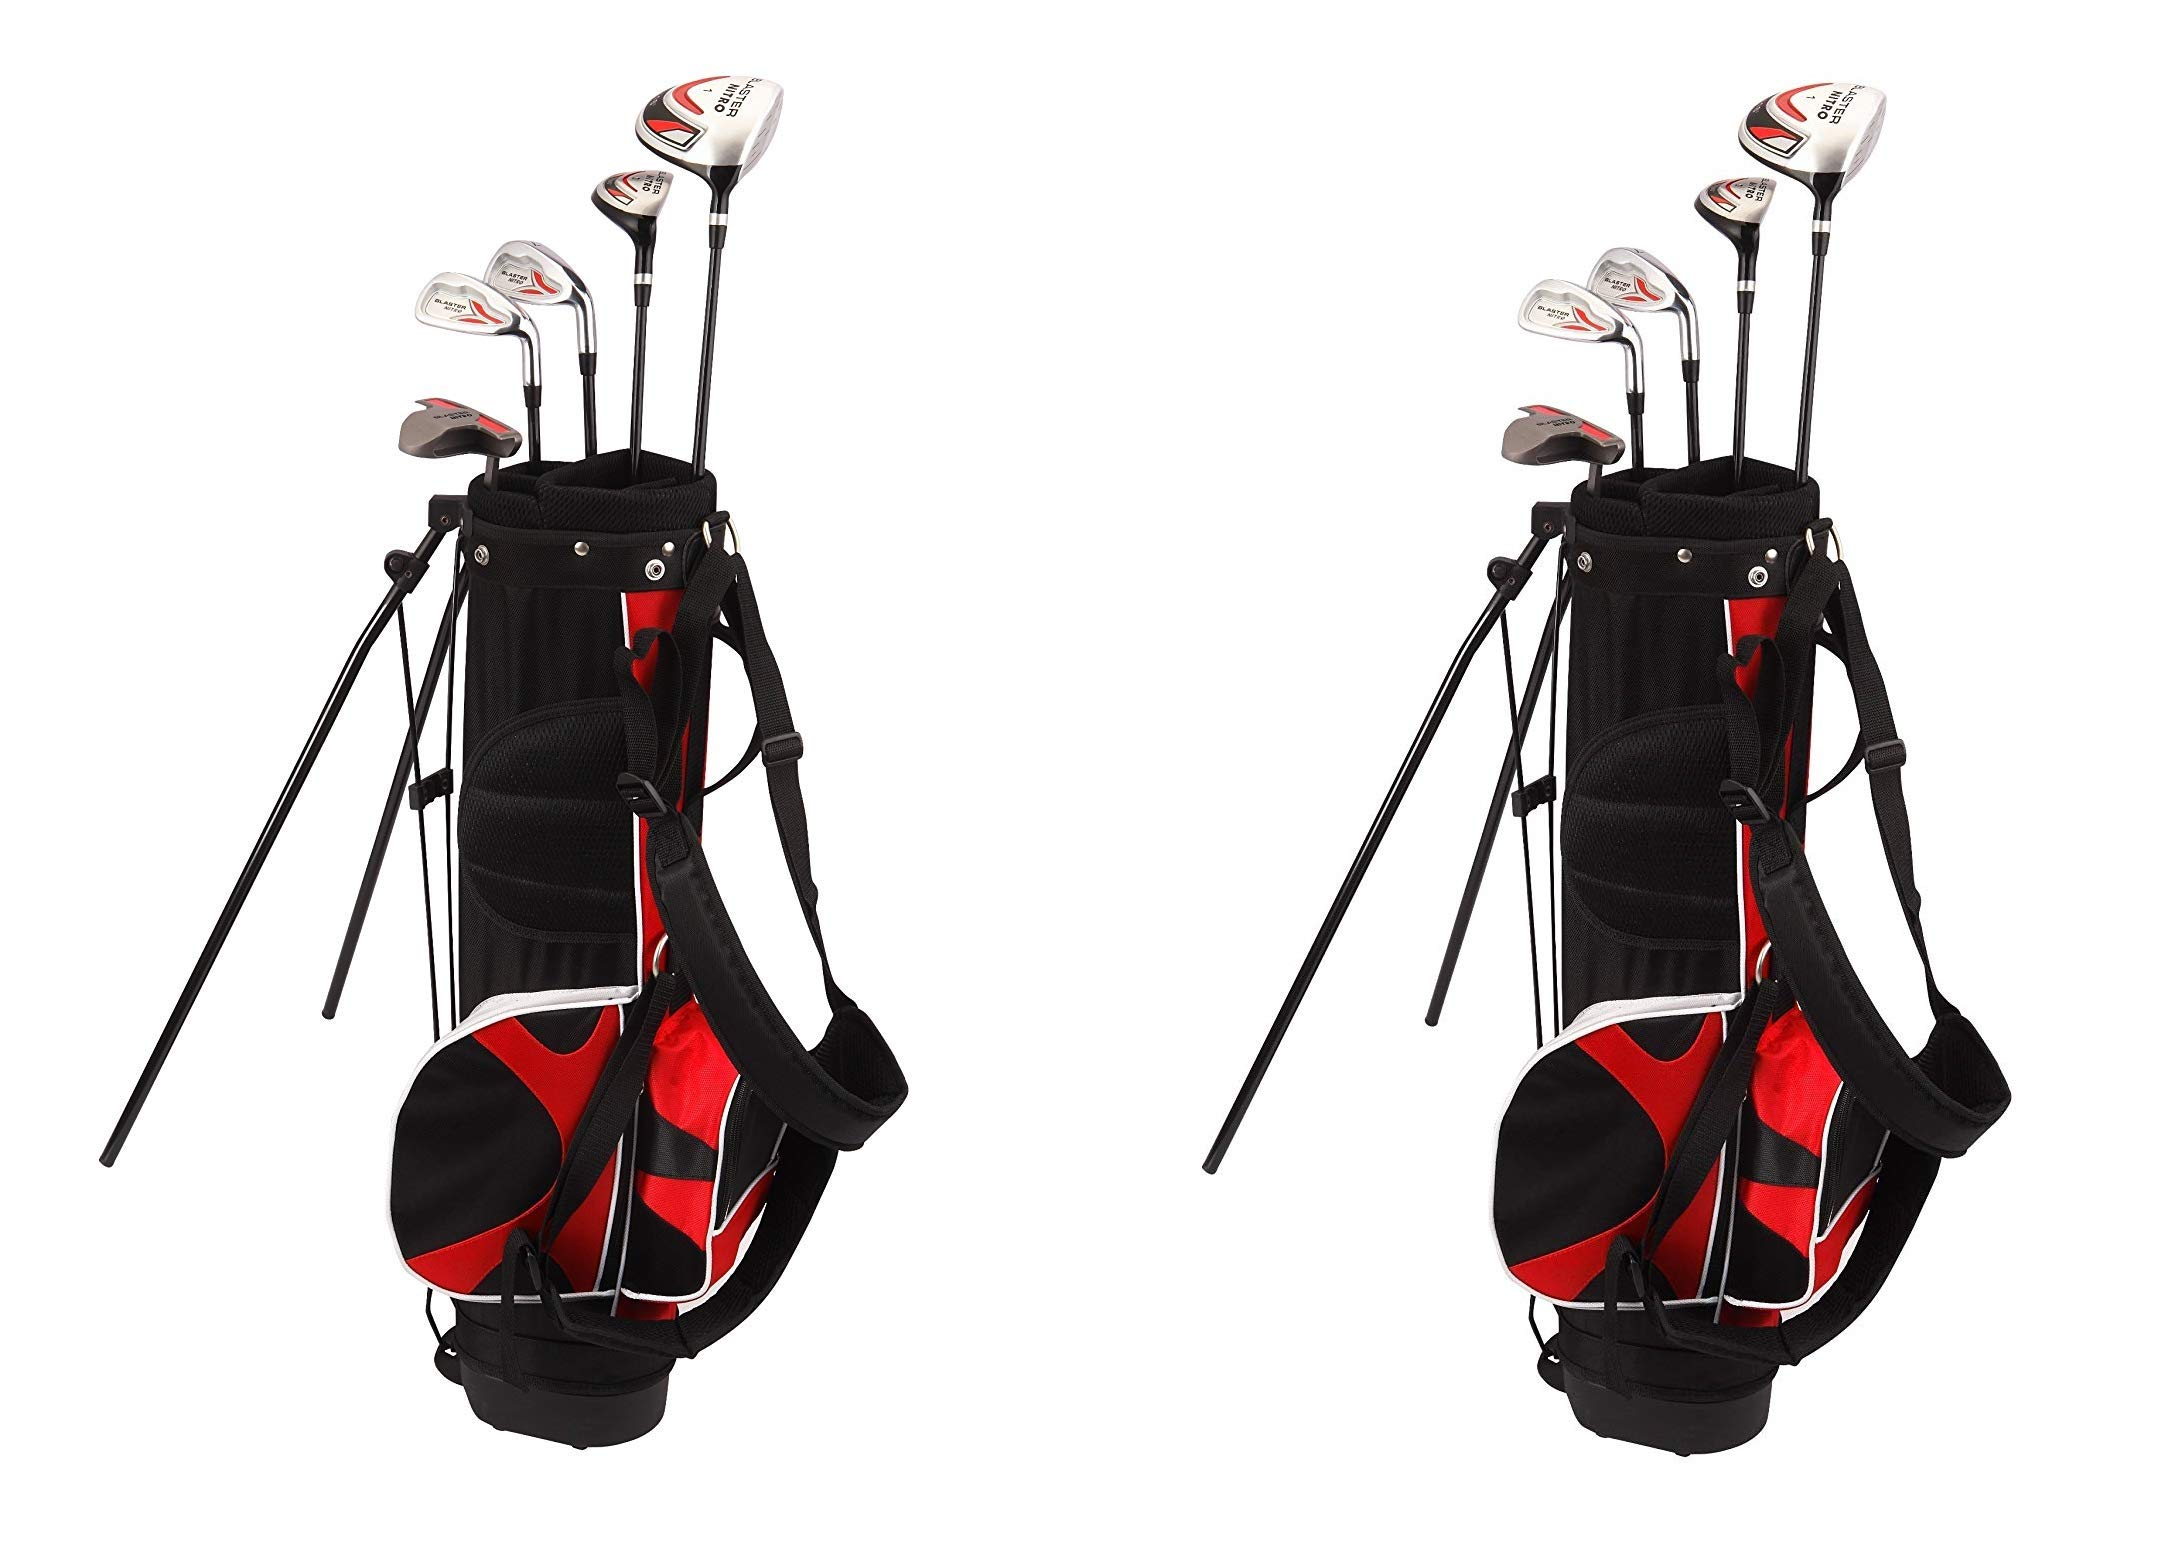 Nitro Kid's Right-Handed 8 Piece Golf Club Set Blaster Kid's Golf Set - 31 Inch Graphite 15-Degree Regular with Bag 9-12 Years (2-Pack) by Nitro